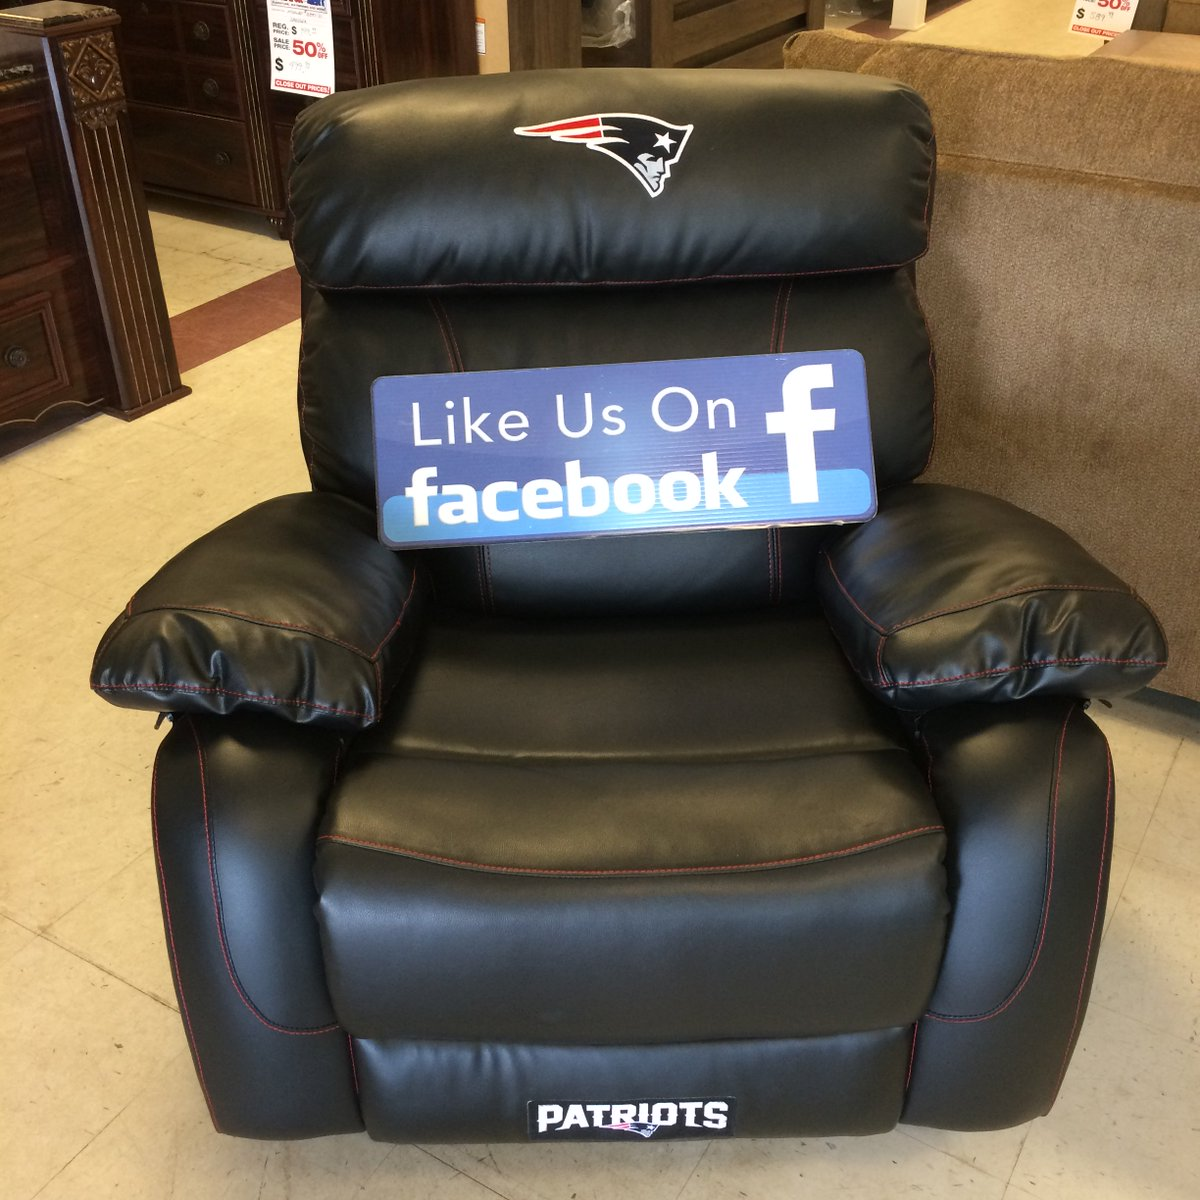 WIN A BRAND NEW FREE PATRIOTS RECLINER   Come into Comfort Home Furniture  or Scratch and Dent for complete details  pic twitter com pyuQiXTltx. ComforthomeFurniture   ComforthomeF    Twitter